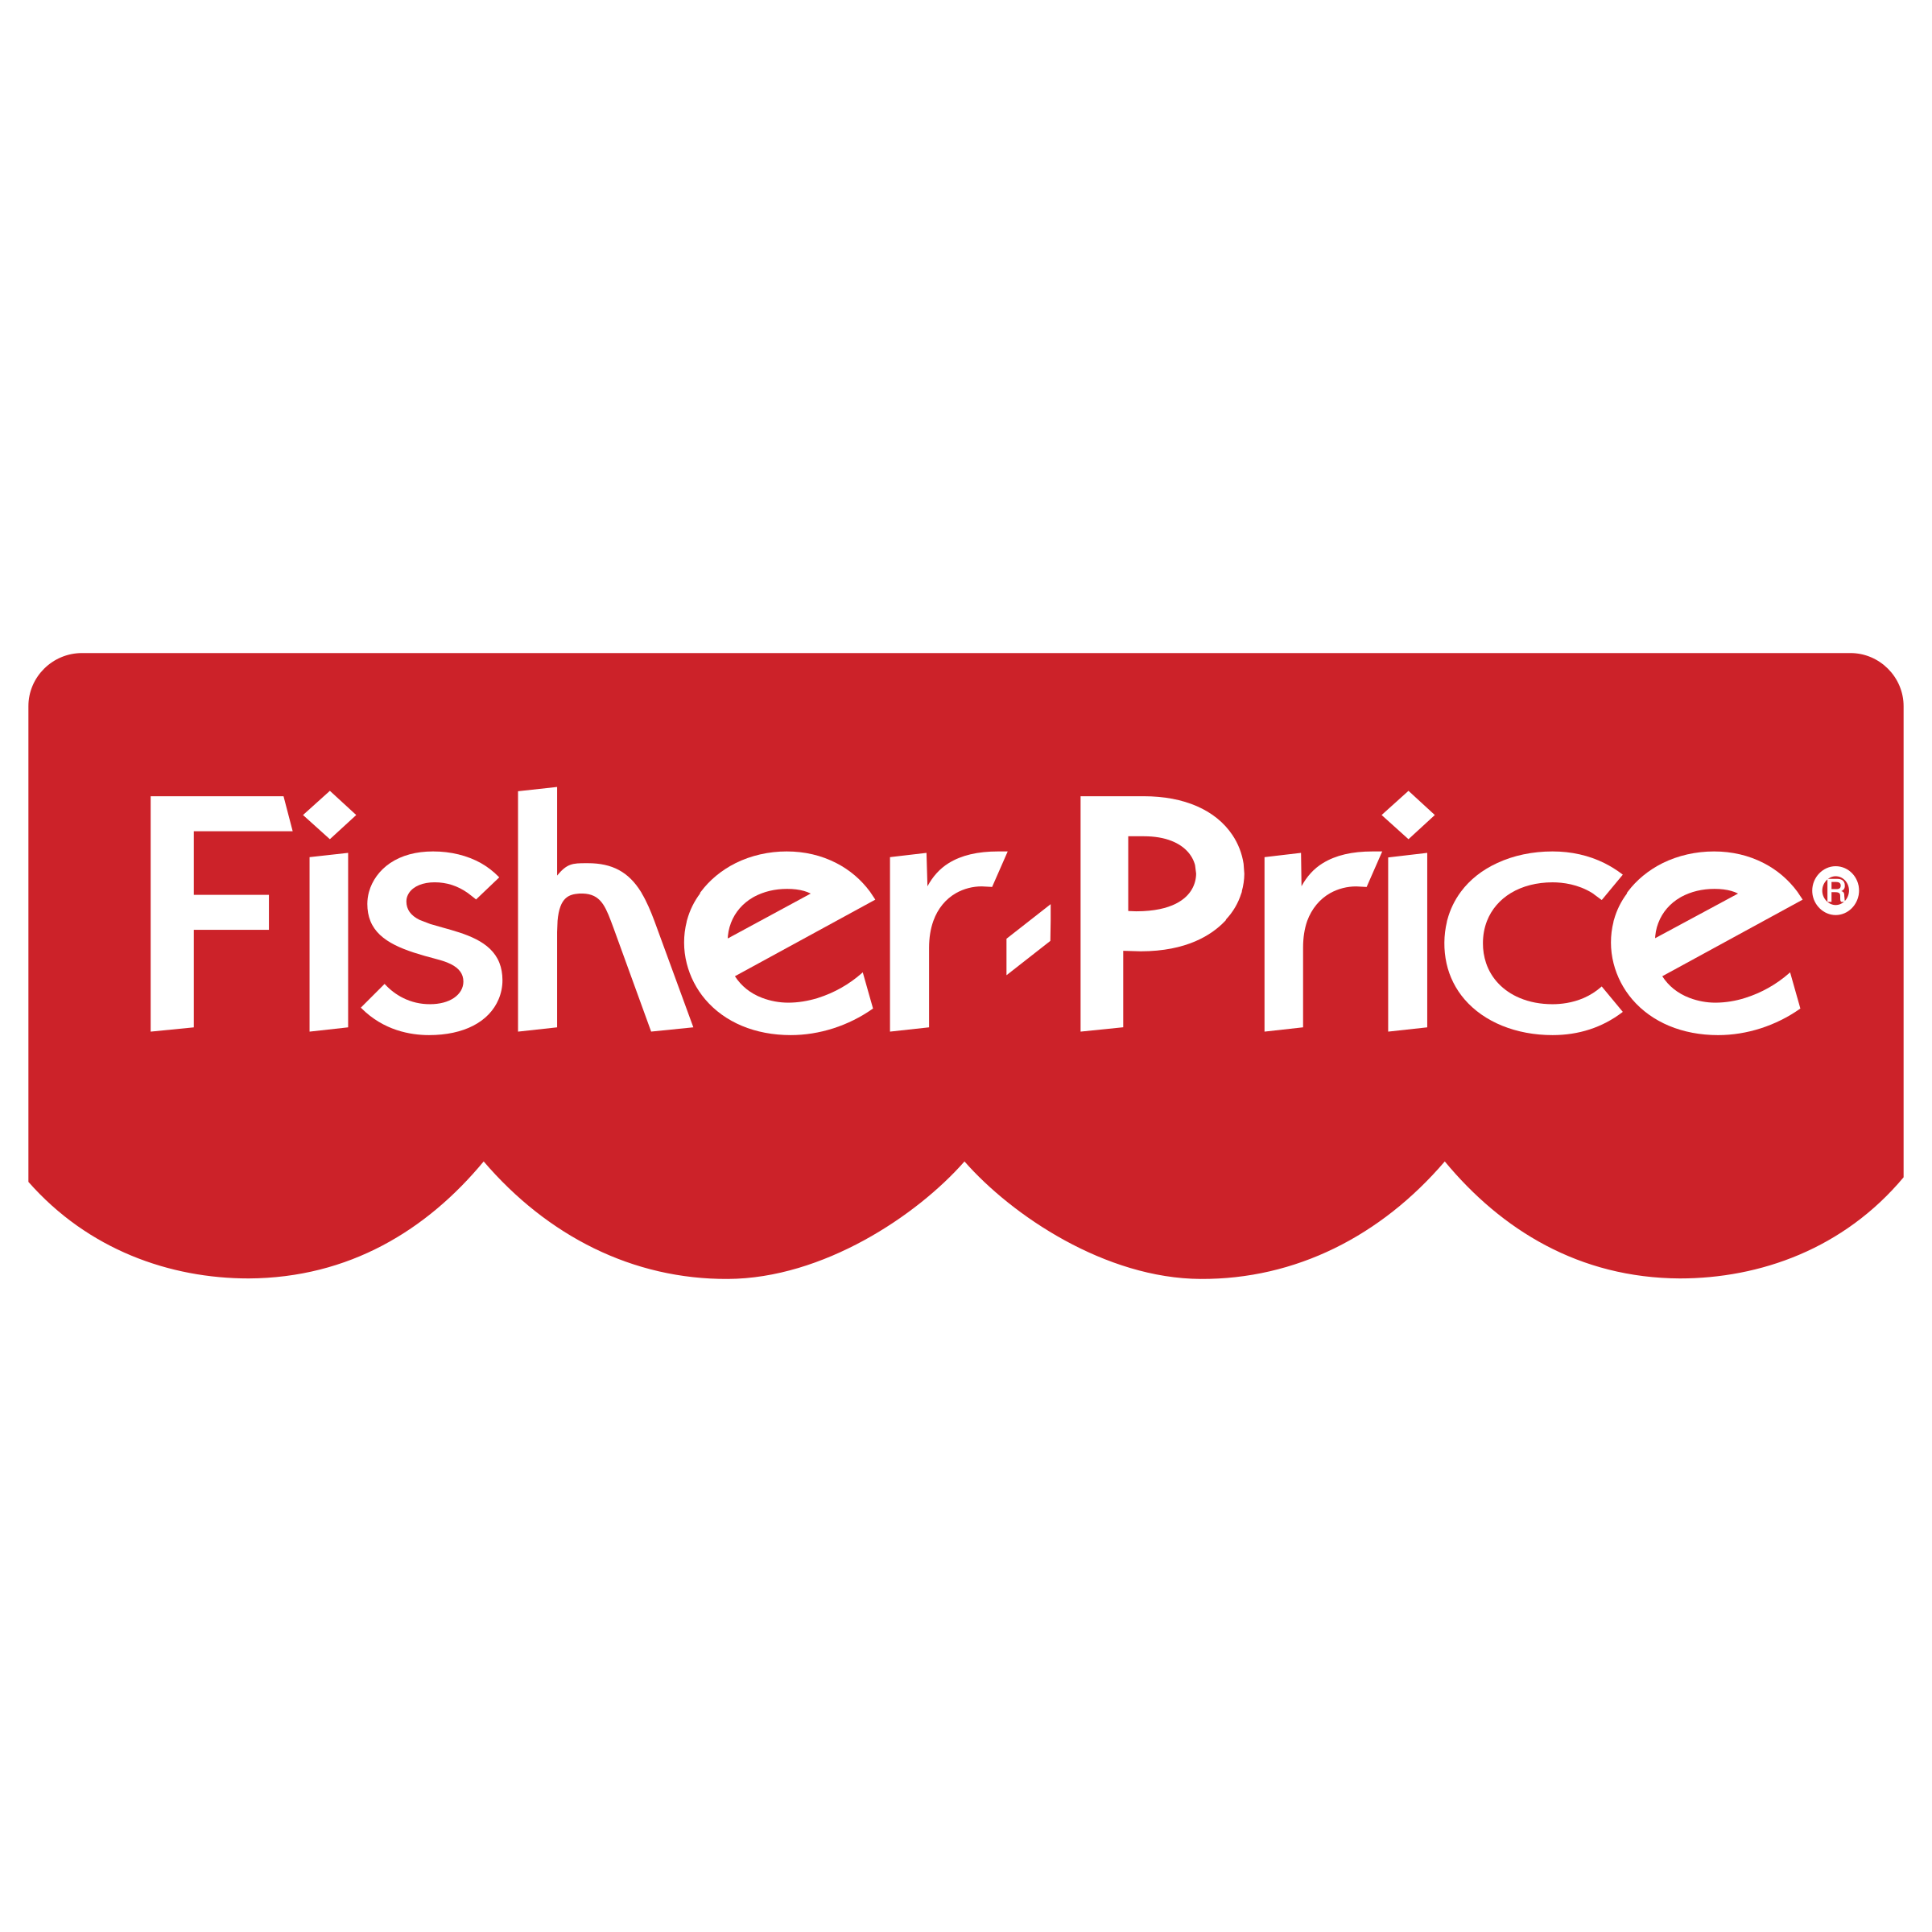 fisher-price-transparent.png